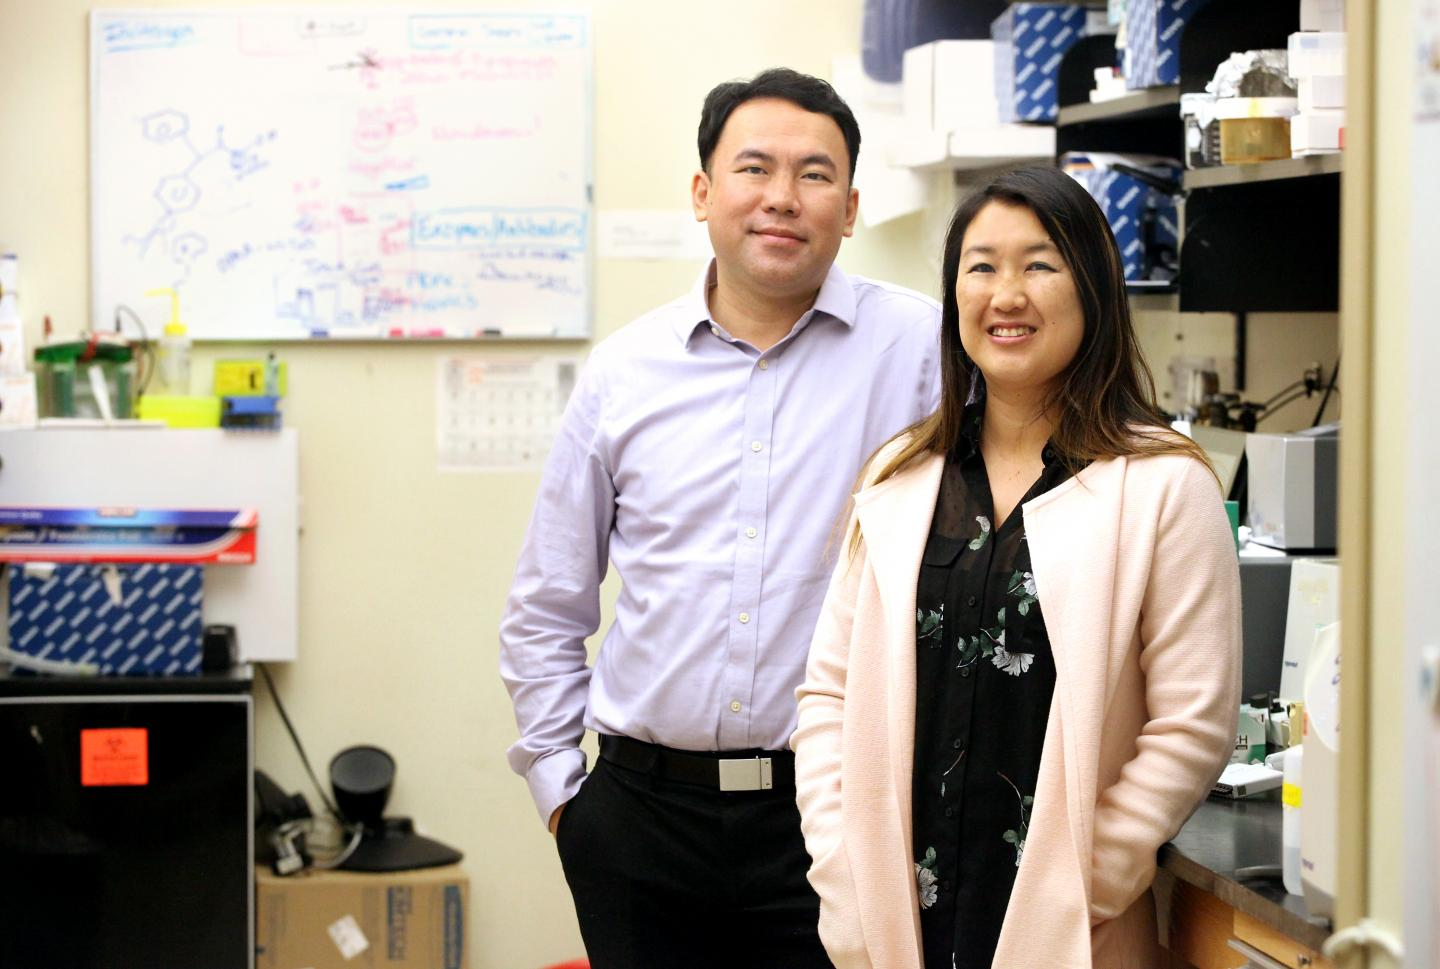 Dr. James Chou and Dr. Sherine Chan of the Medical University of South Carolina (Musc)